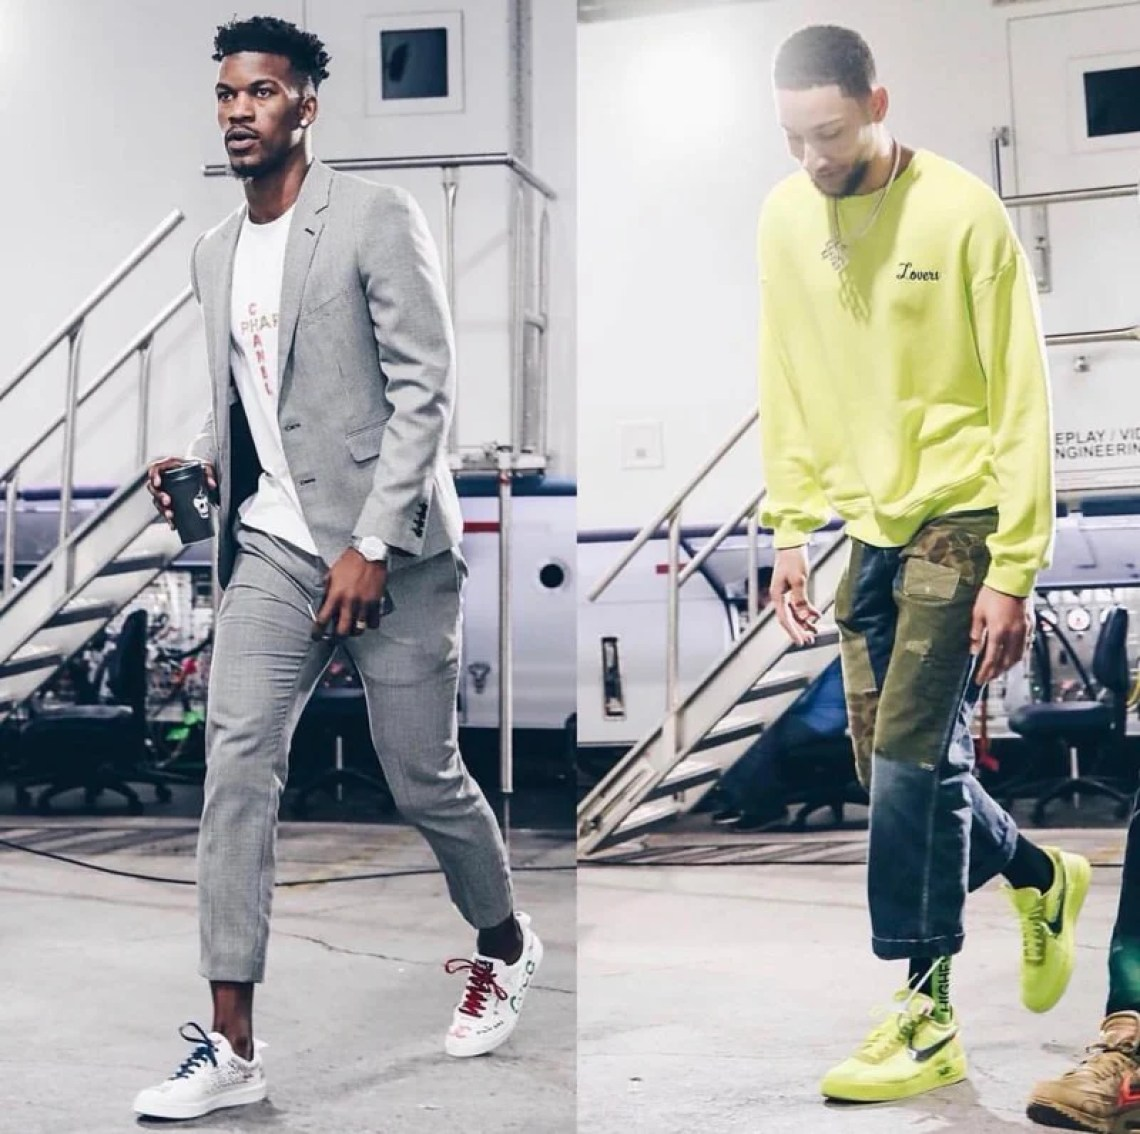 Loud luxury is the name of the game in the 2019 NBA Playoffs.